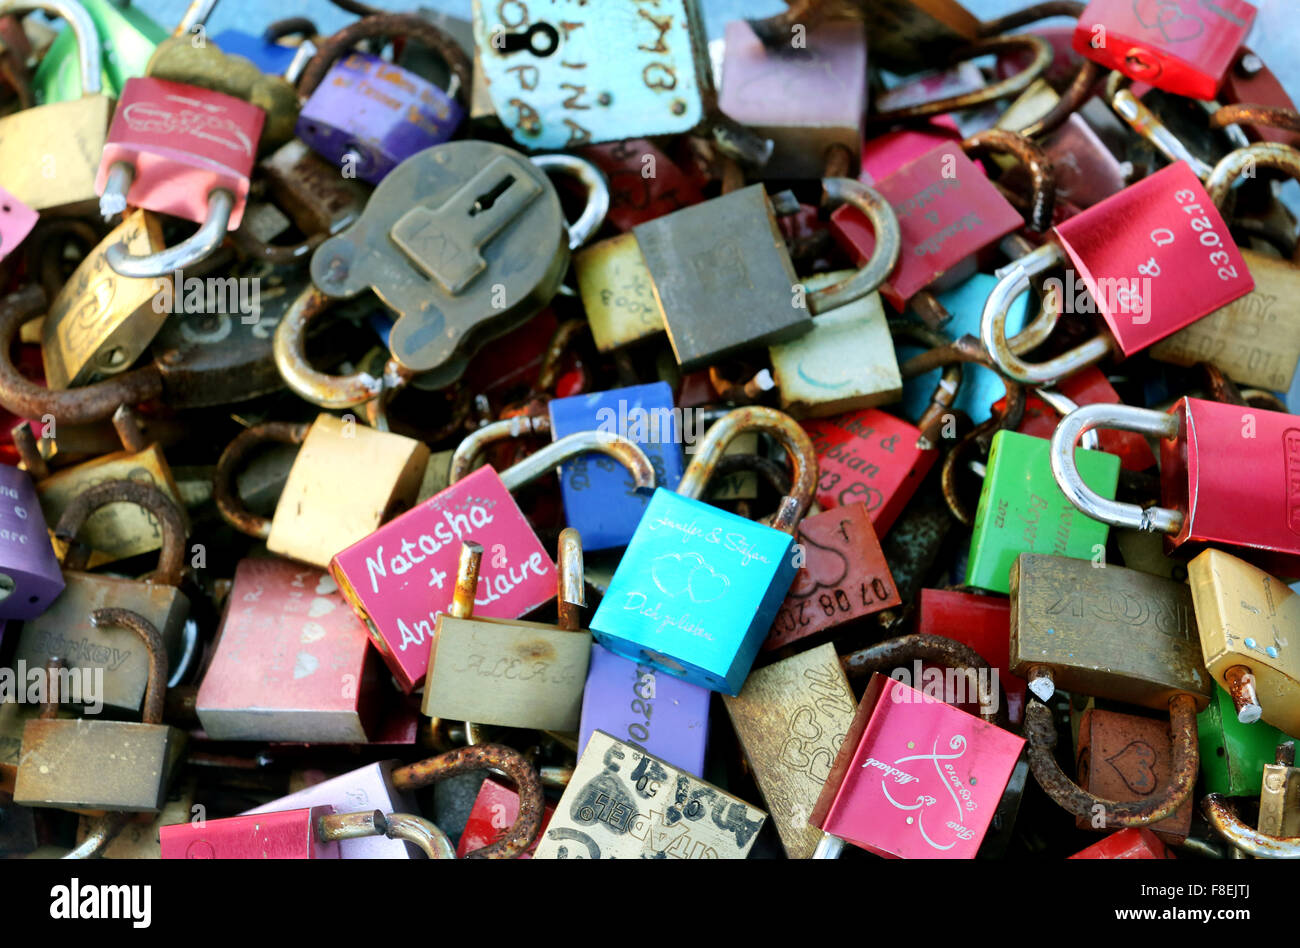 Love locks removed from a bridge over the Rhein Herne Canal cen be seen a box in Oberhausen, Germany, 09 December - Stock Image